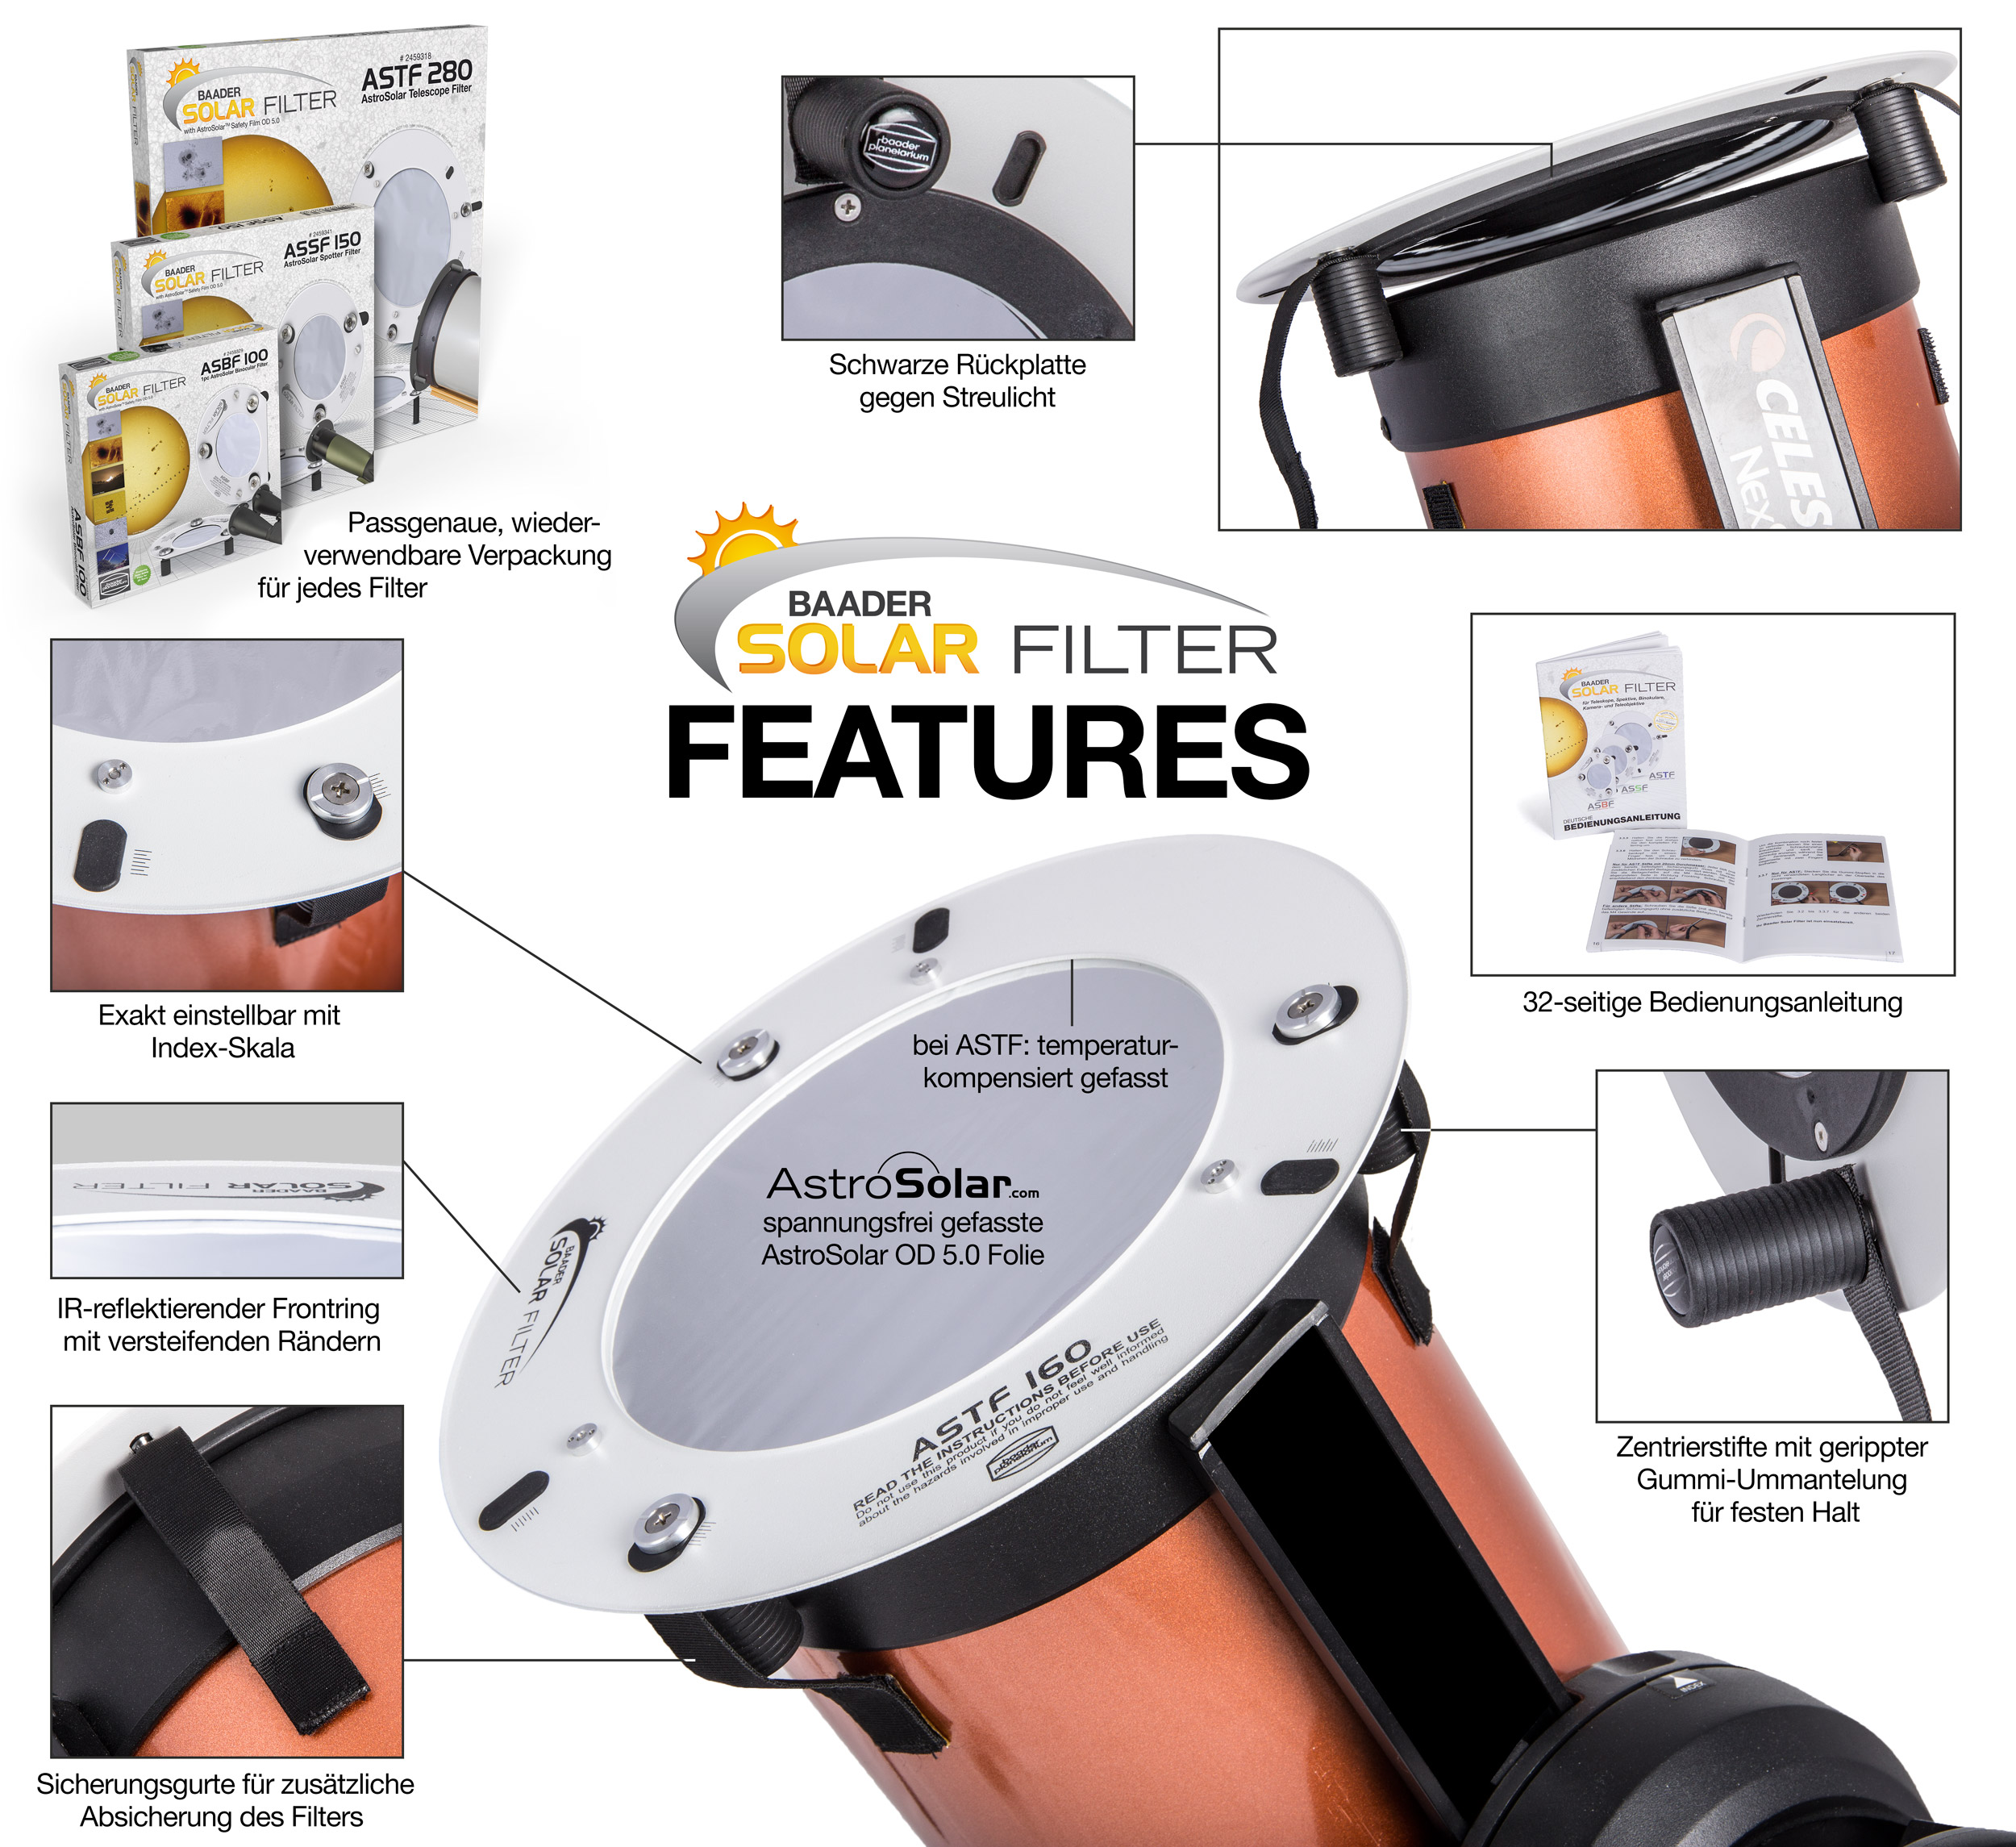 Baader Solar Filter - Features